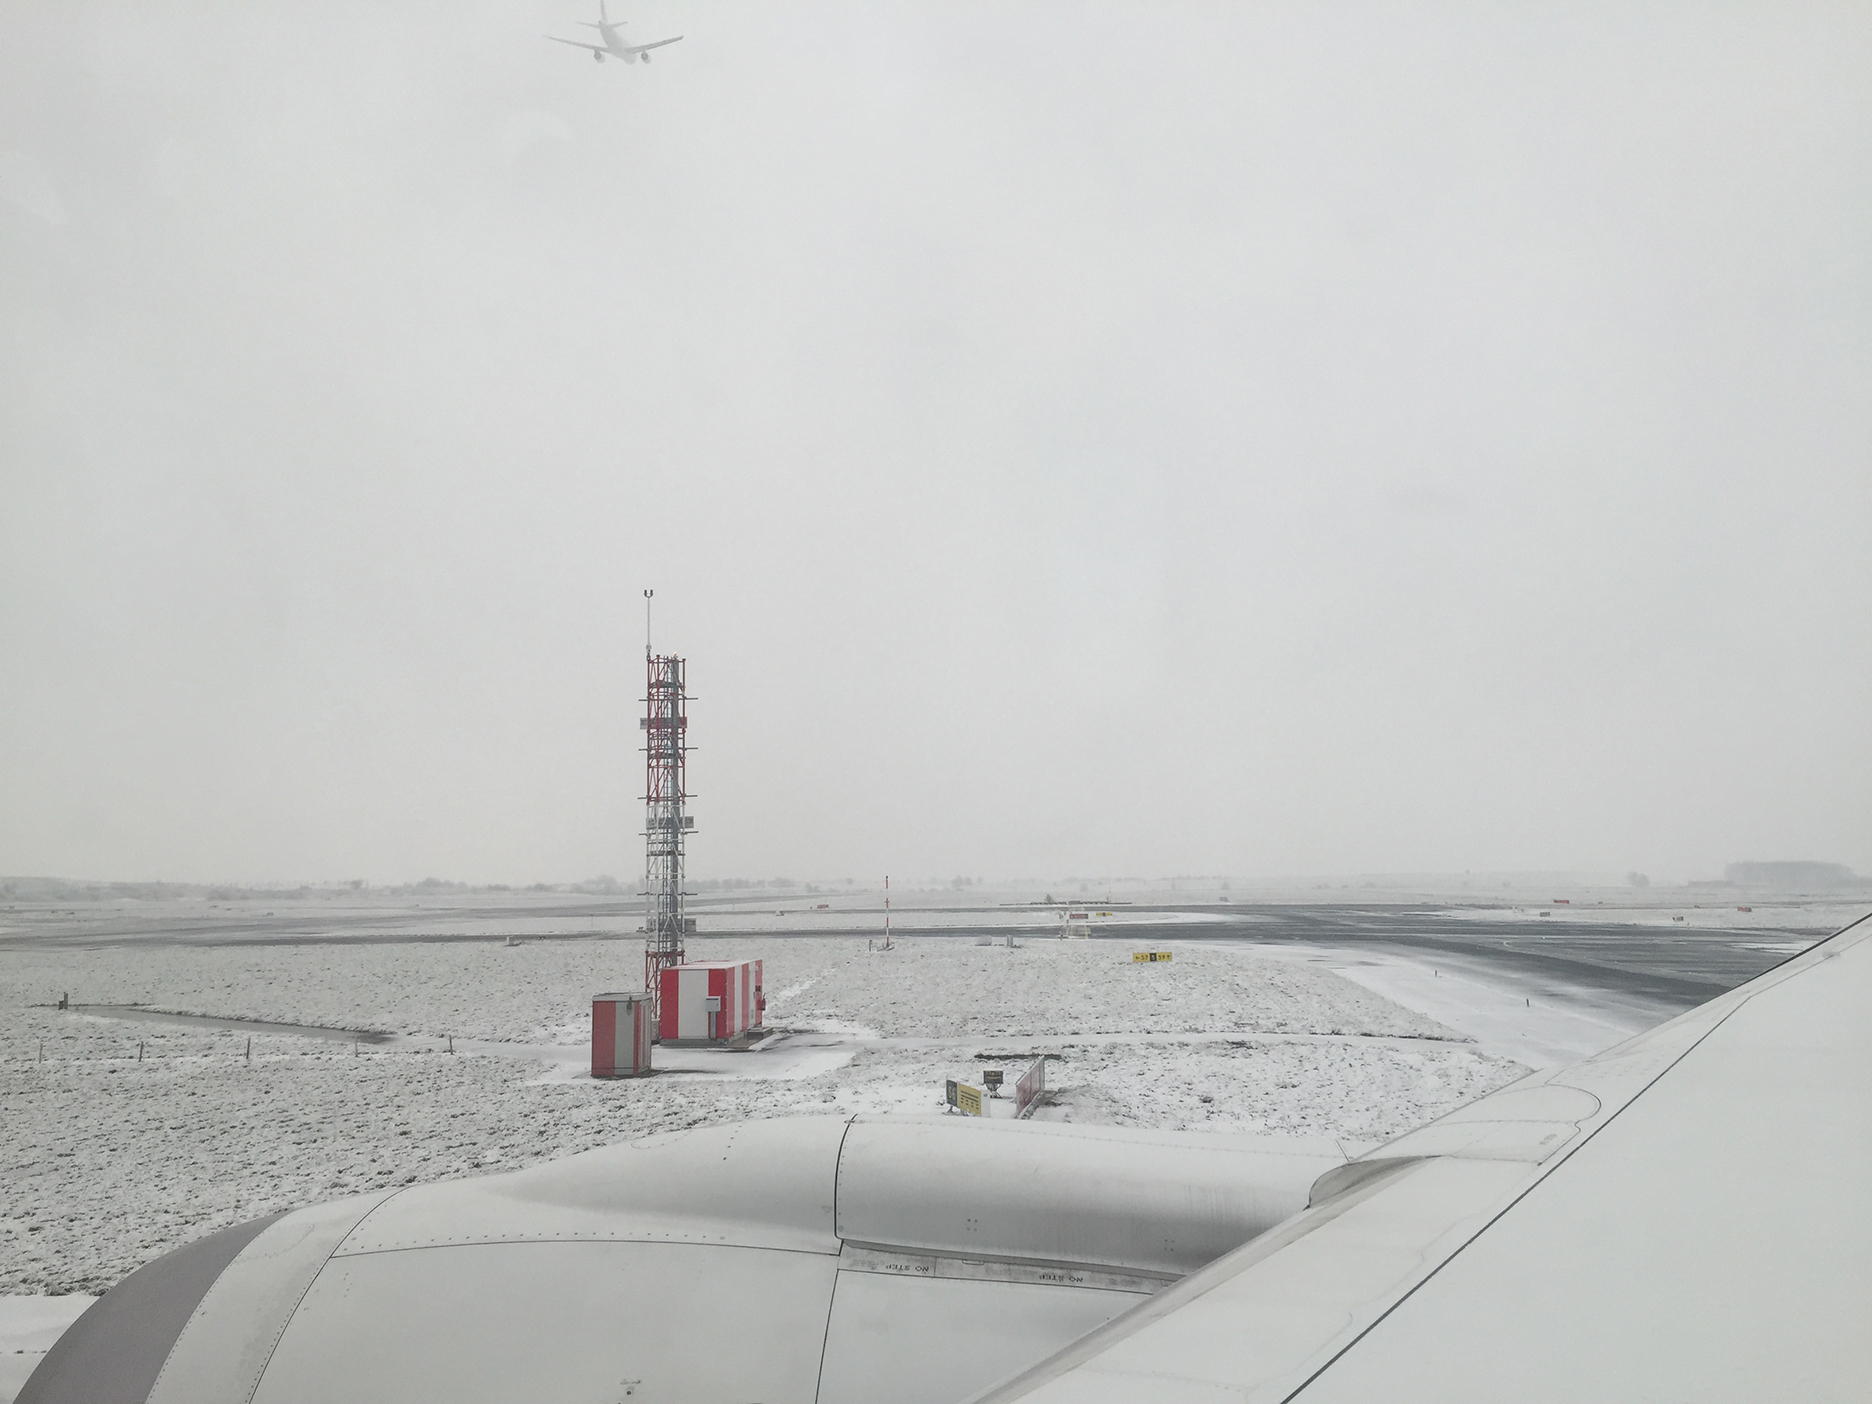 Otherworldly CDG airport in February 2018